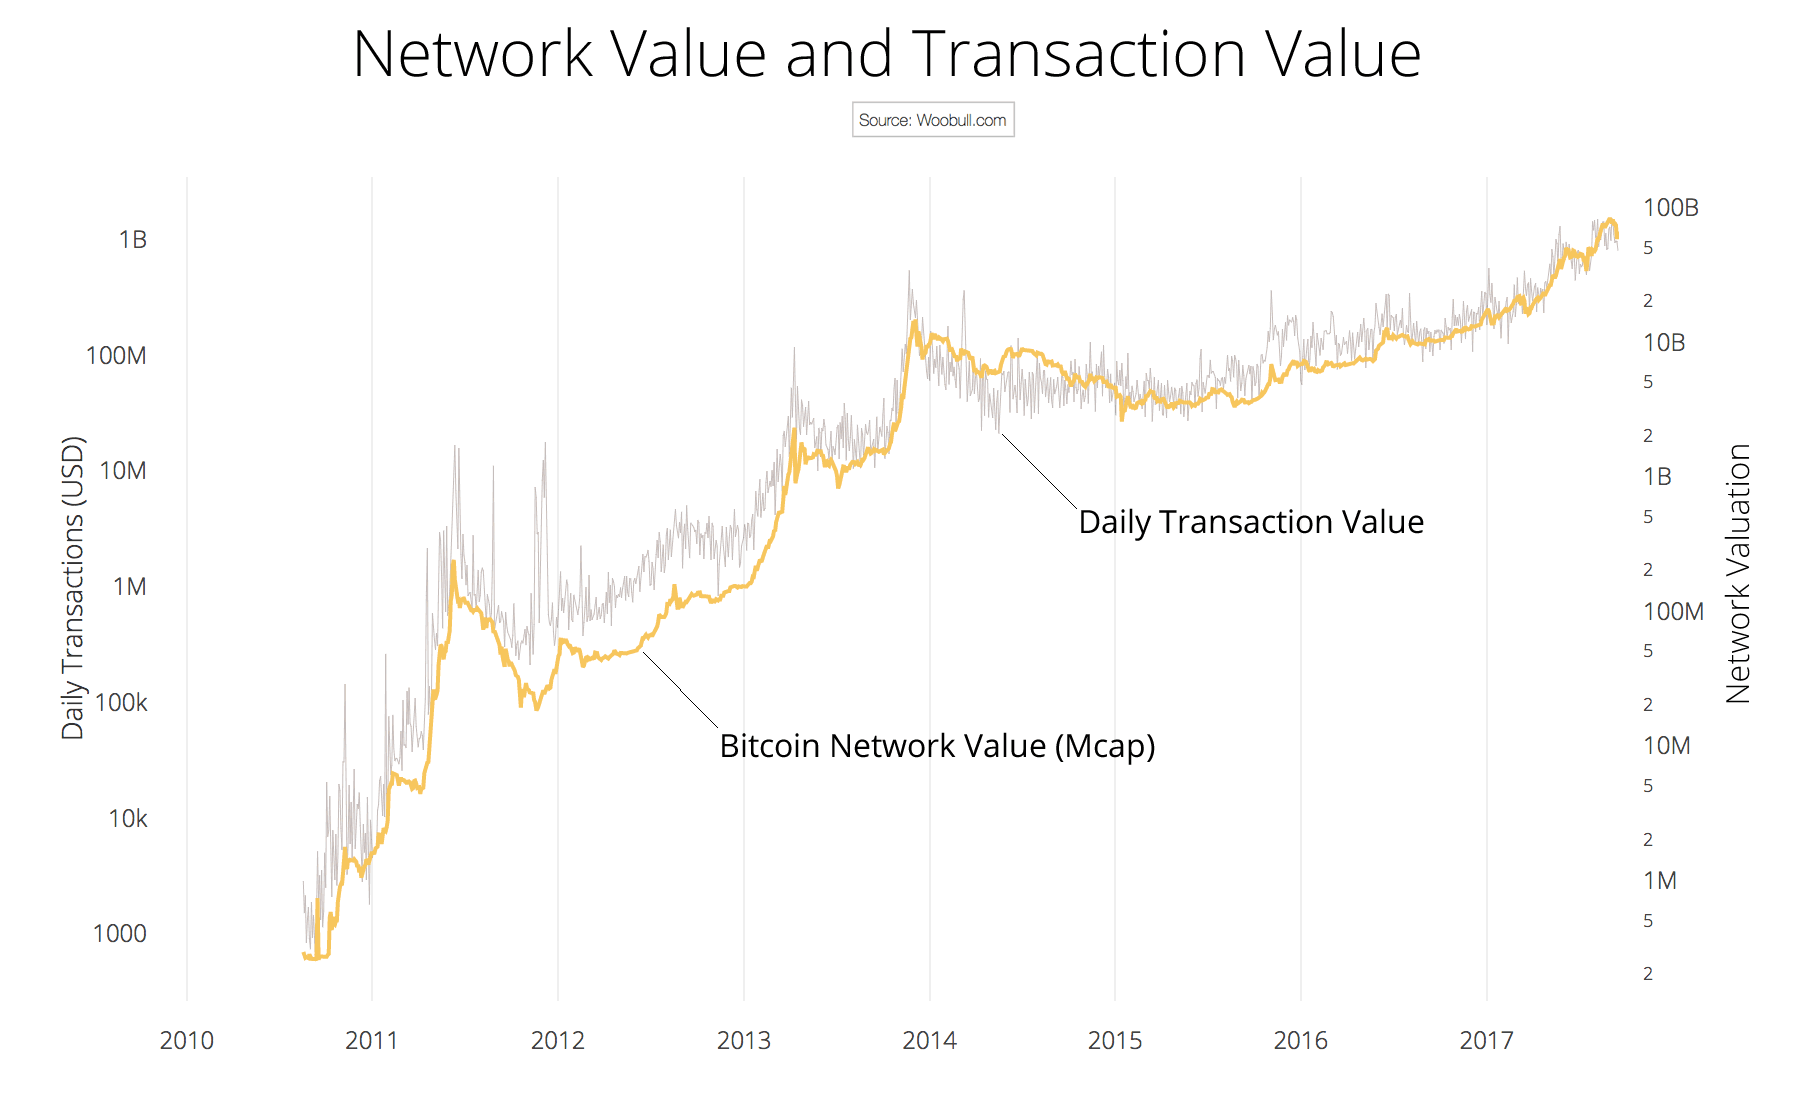 Bitcoin Transaction Value and Network Value